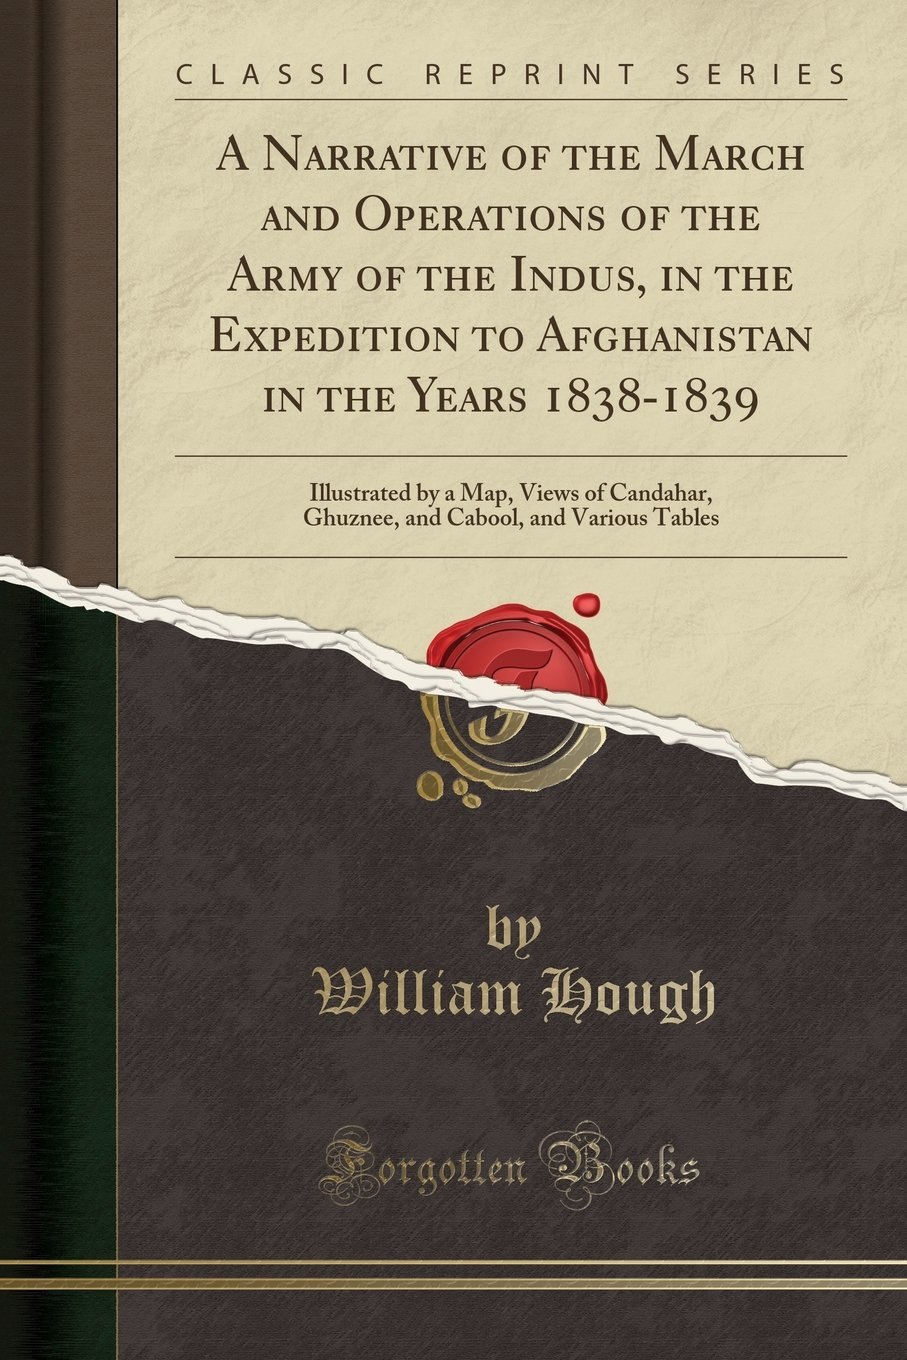 A Narrative of the March and Operations of the Army of the Indus, in the Expedition to Afghanistan in the Years 1838-1839: Illustrated by a Map, Views ... Cabool, and Various Tables (Classic Reprint)